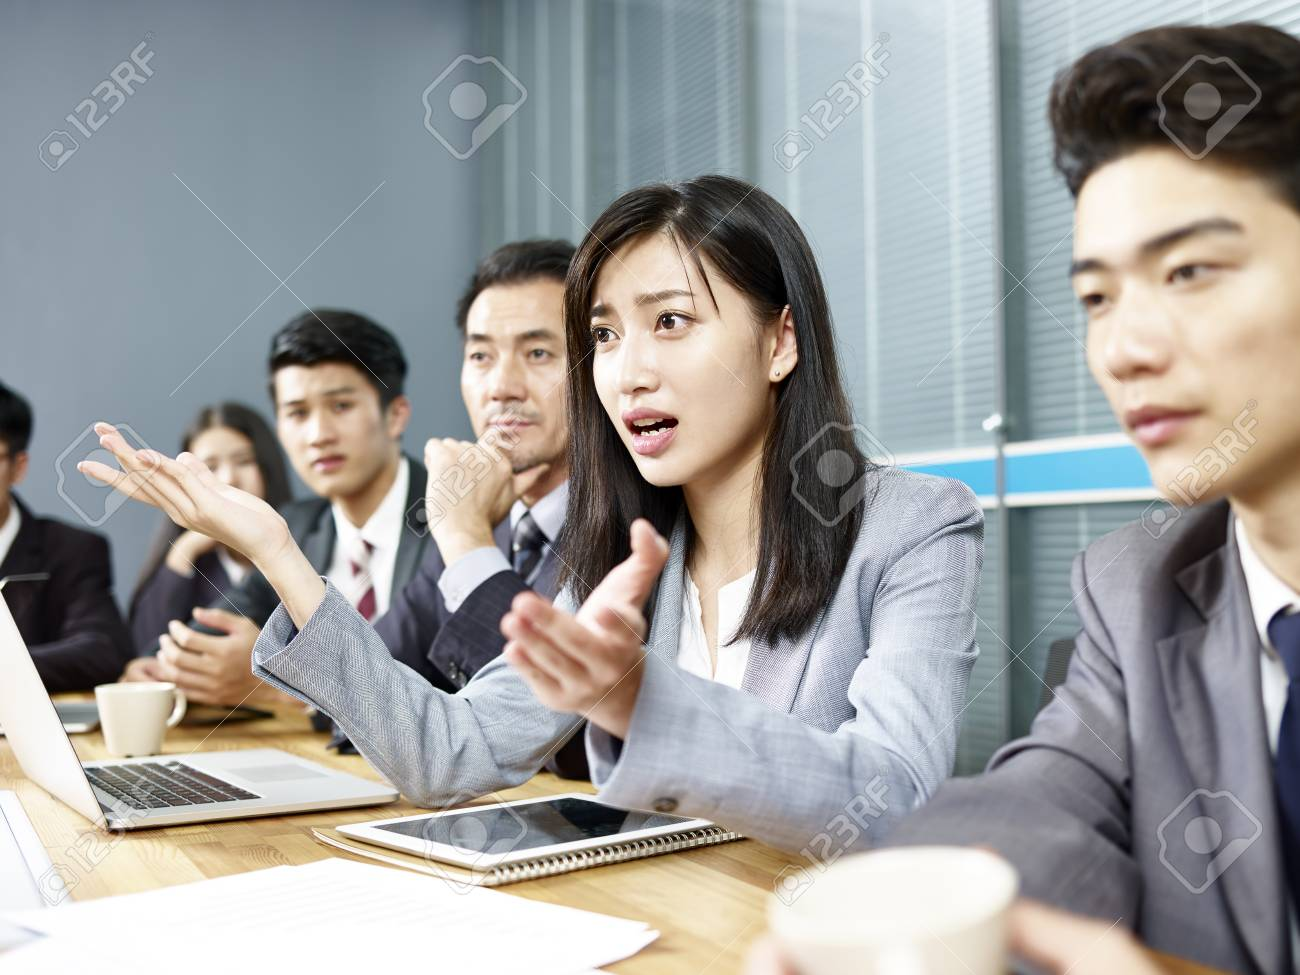 young asian business woman executive engaging in a heated discussion during meeting. - 106415000